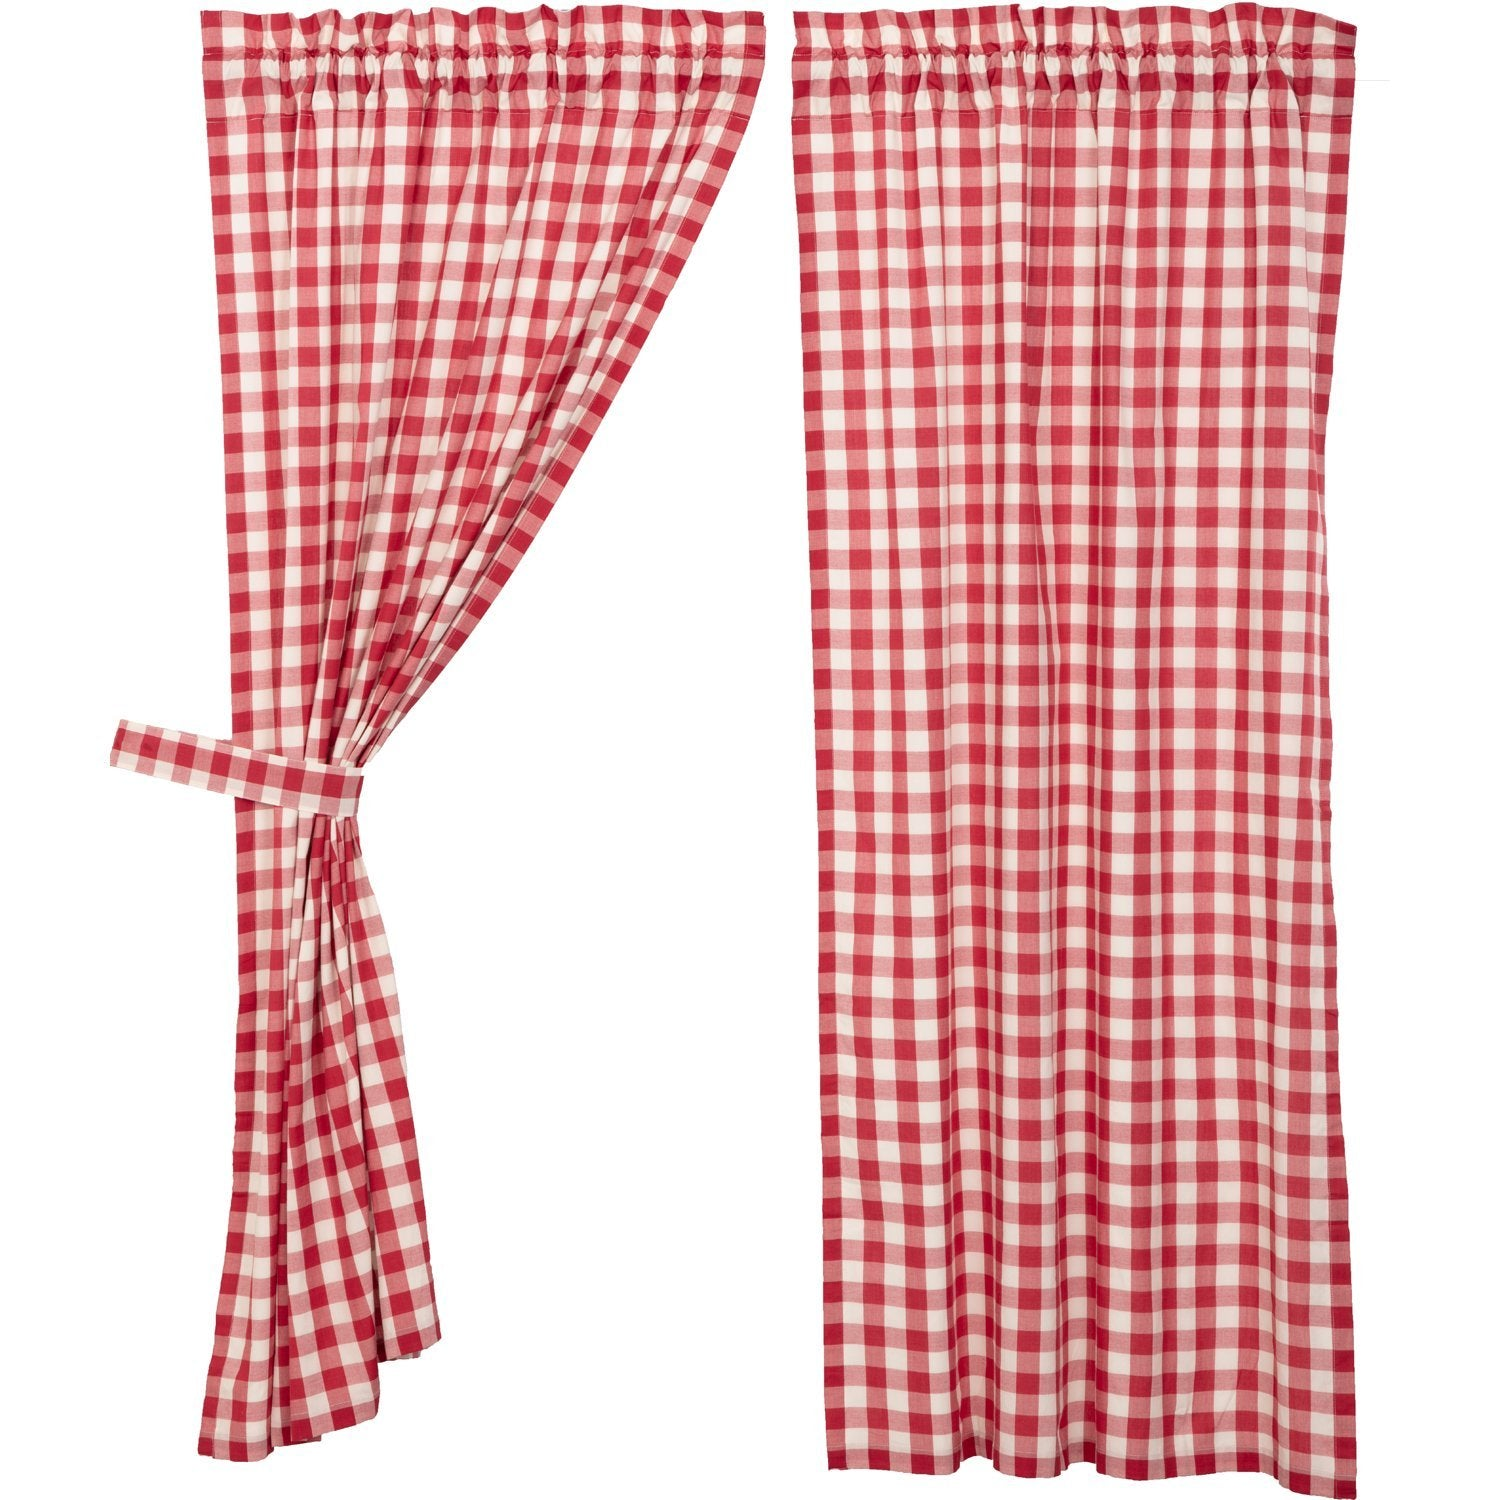 Annie Buffalo Red Check Panel Set of 2.